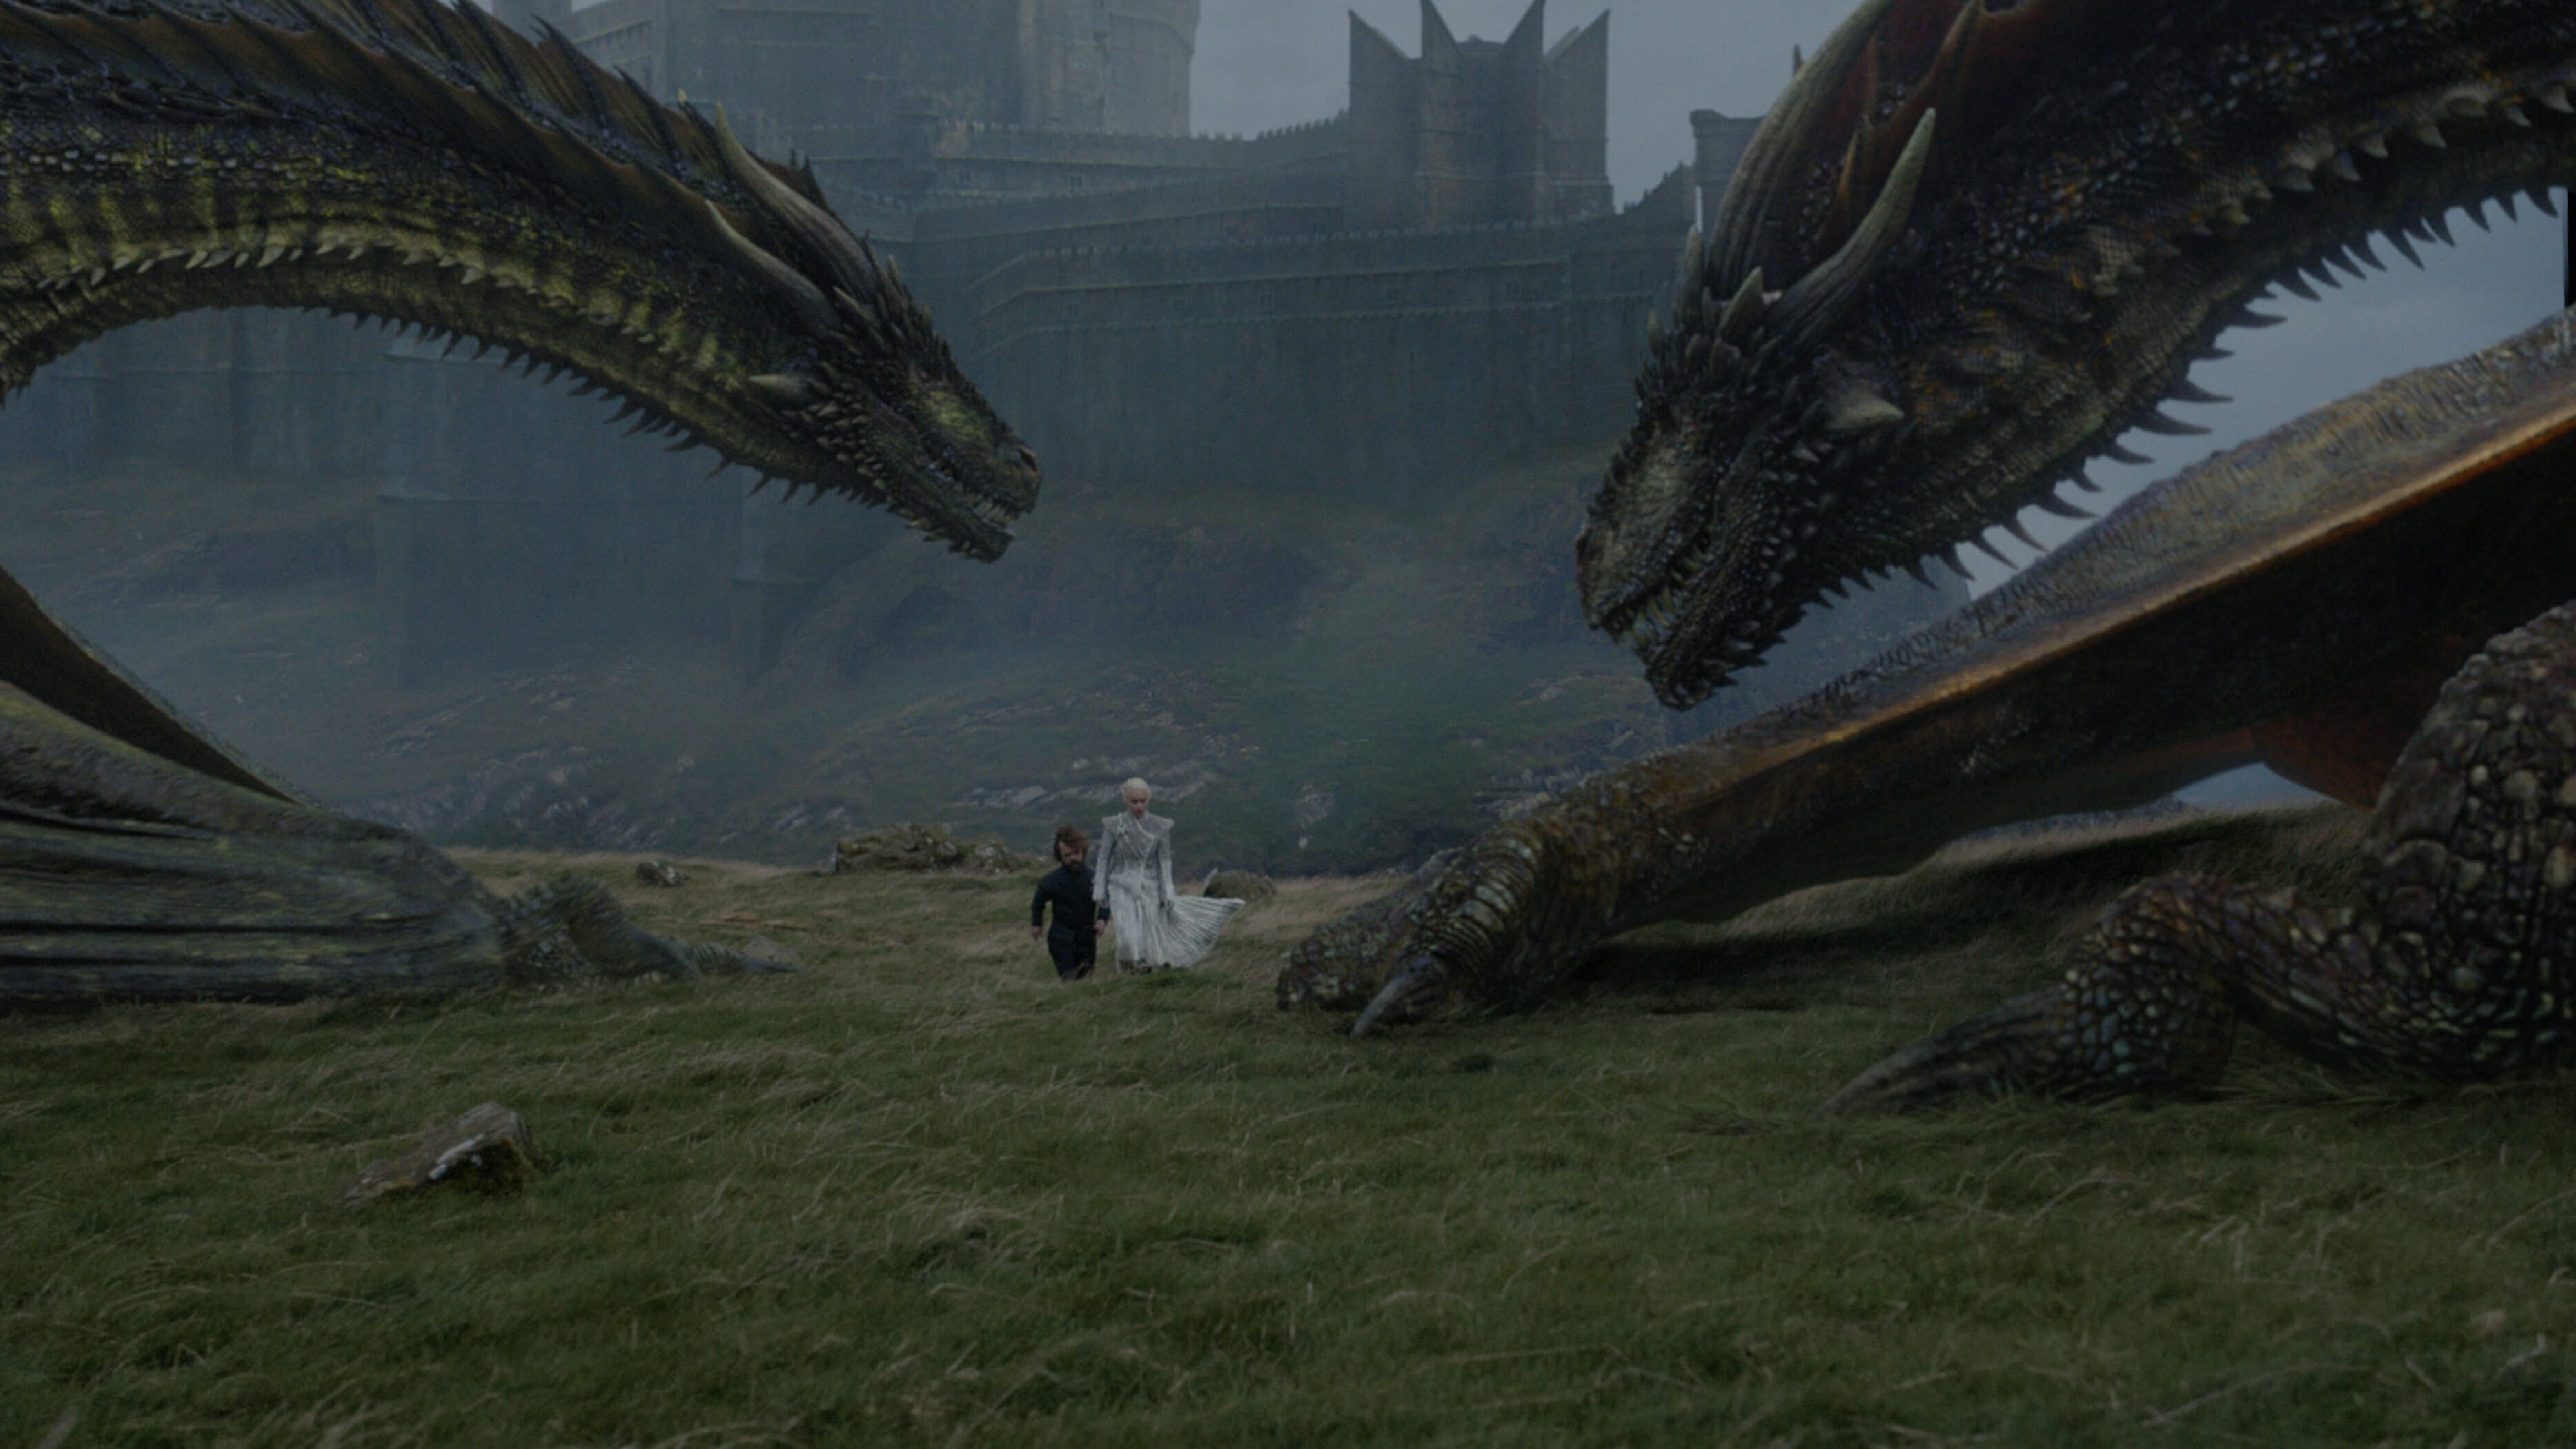 game of thrones daenerys tyrion dragons